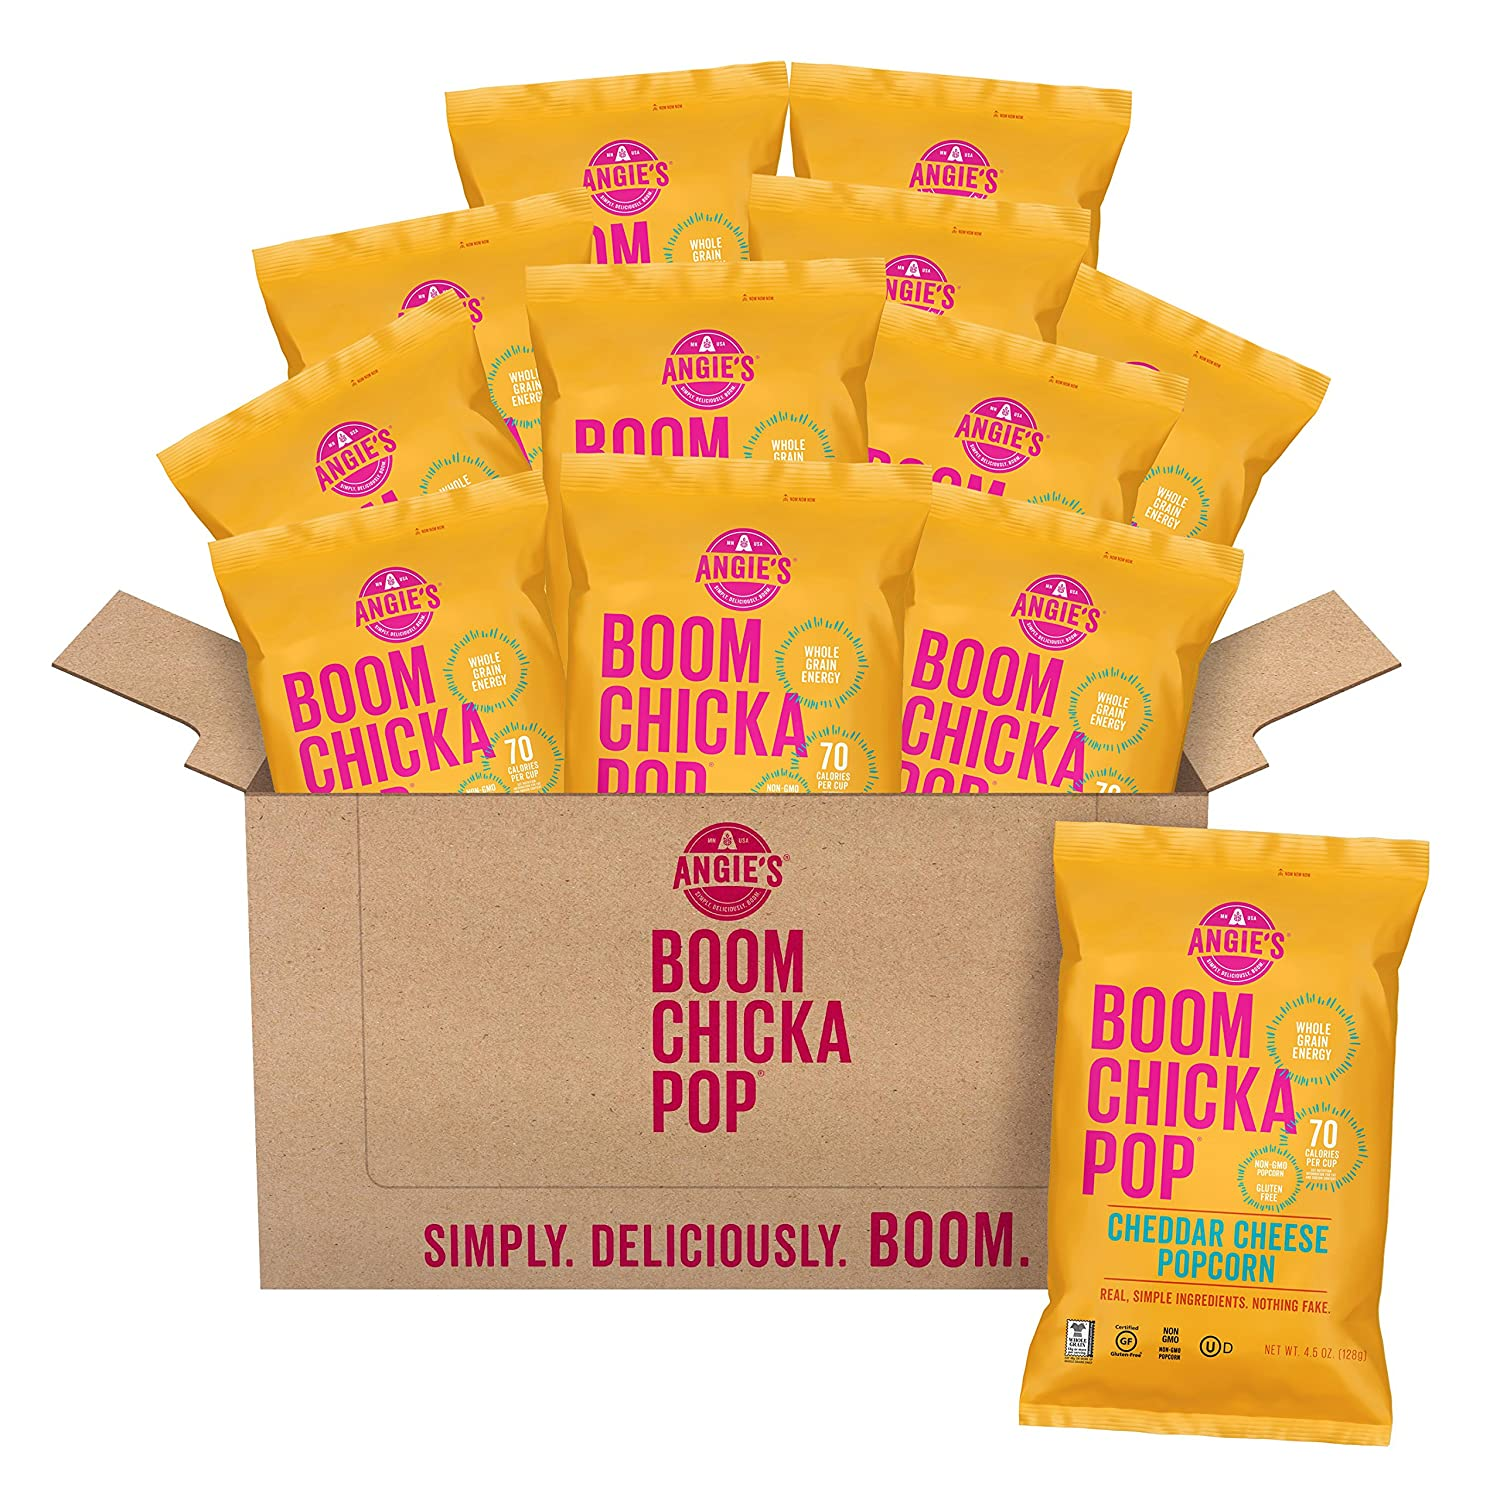 Angie's BOOMCHICKAPOP Cheddar Cheese Popcorn, 4.5 Ounce Bag (Pack of 12 Bags)